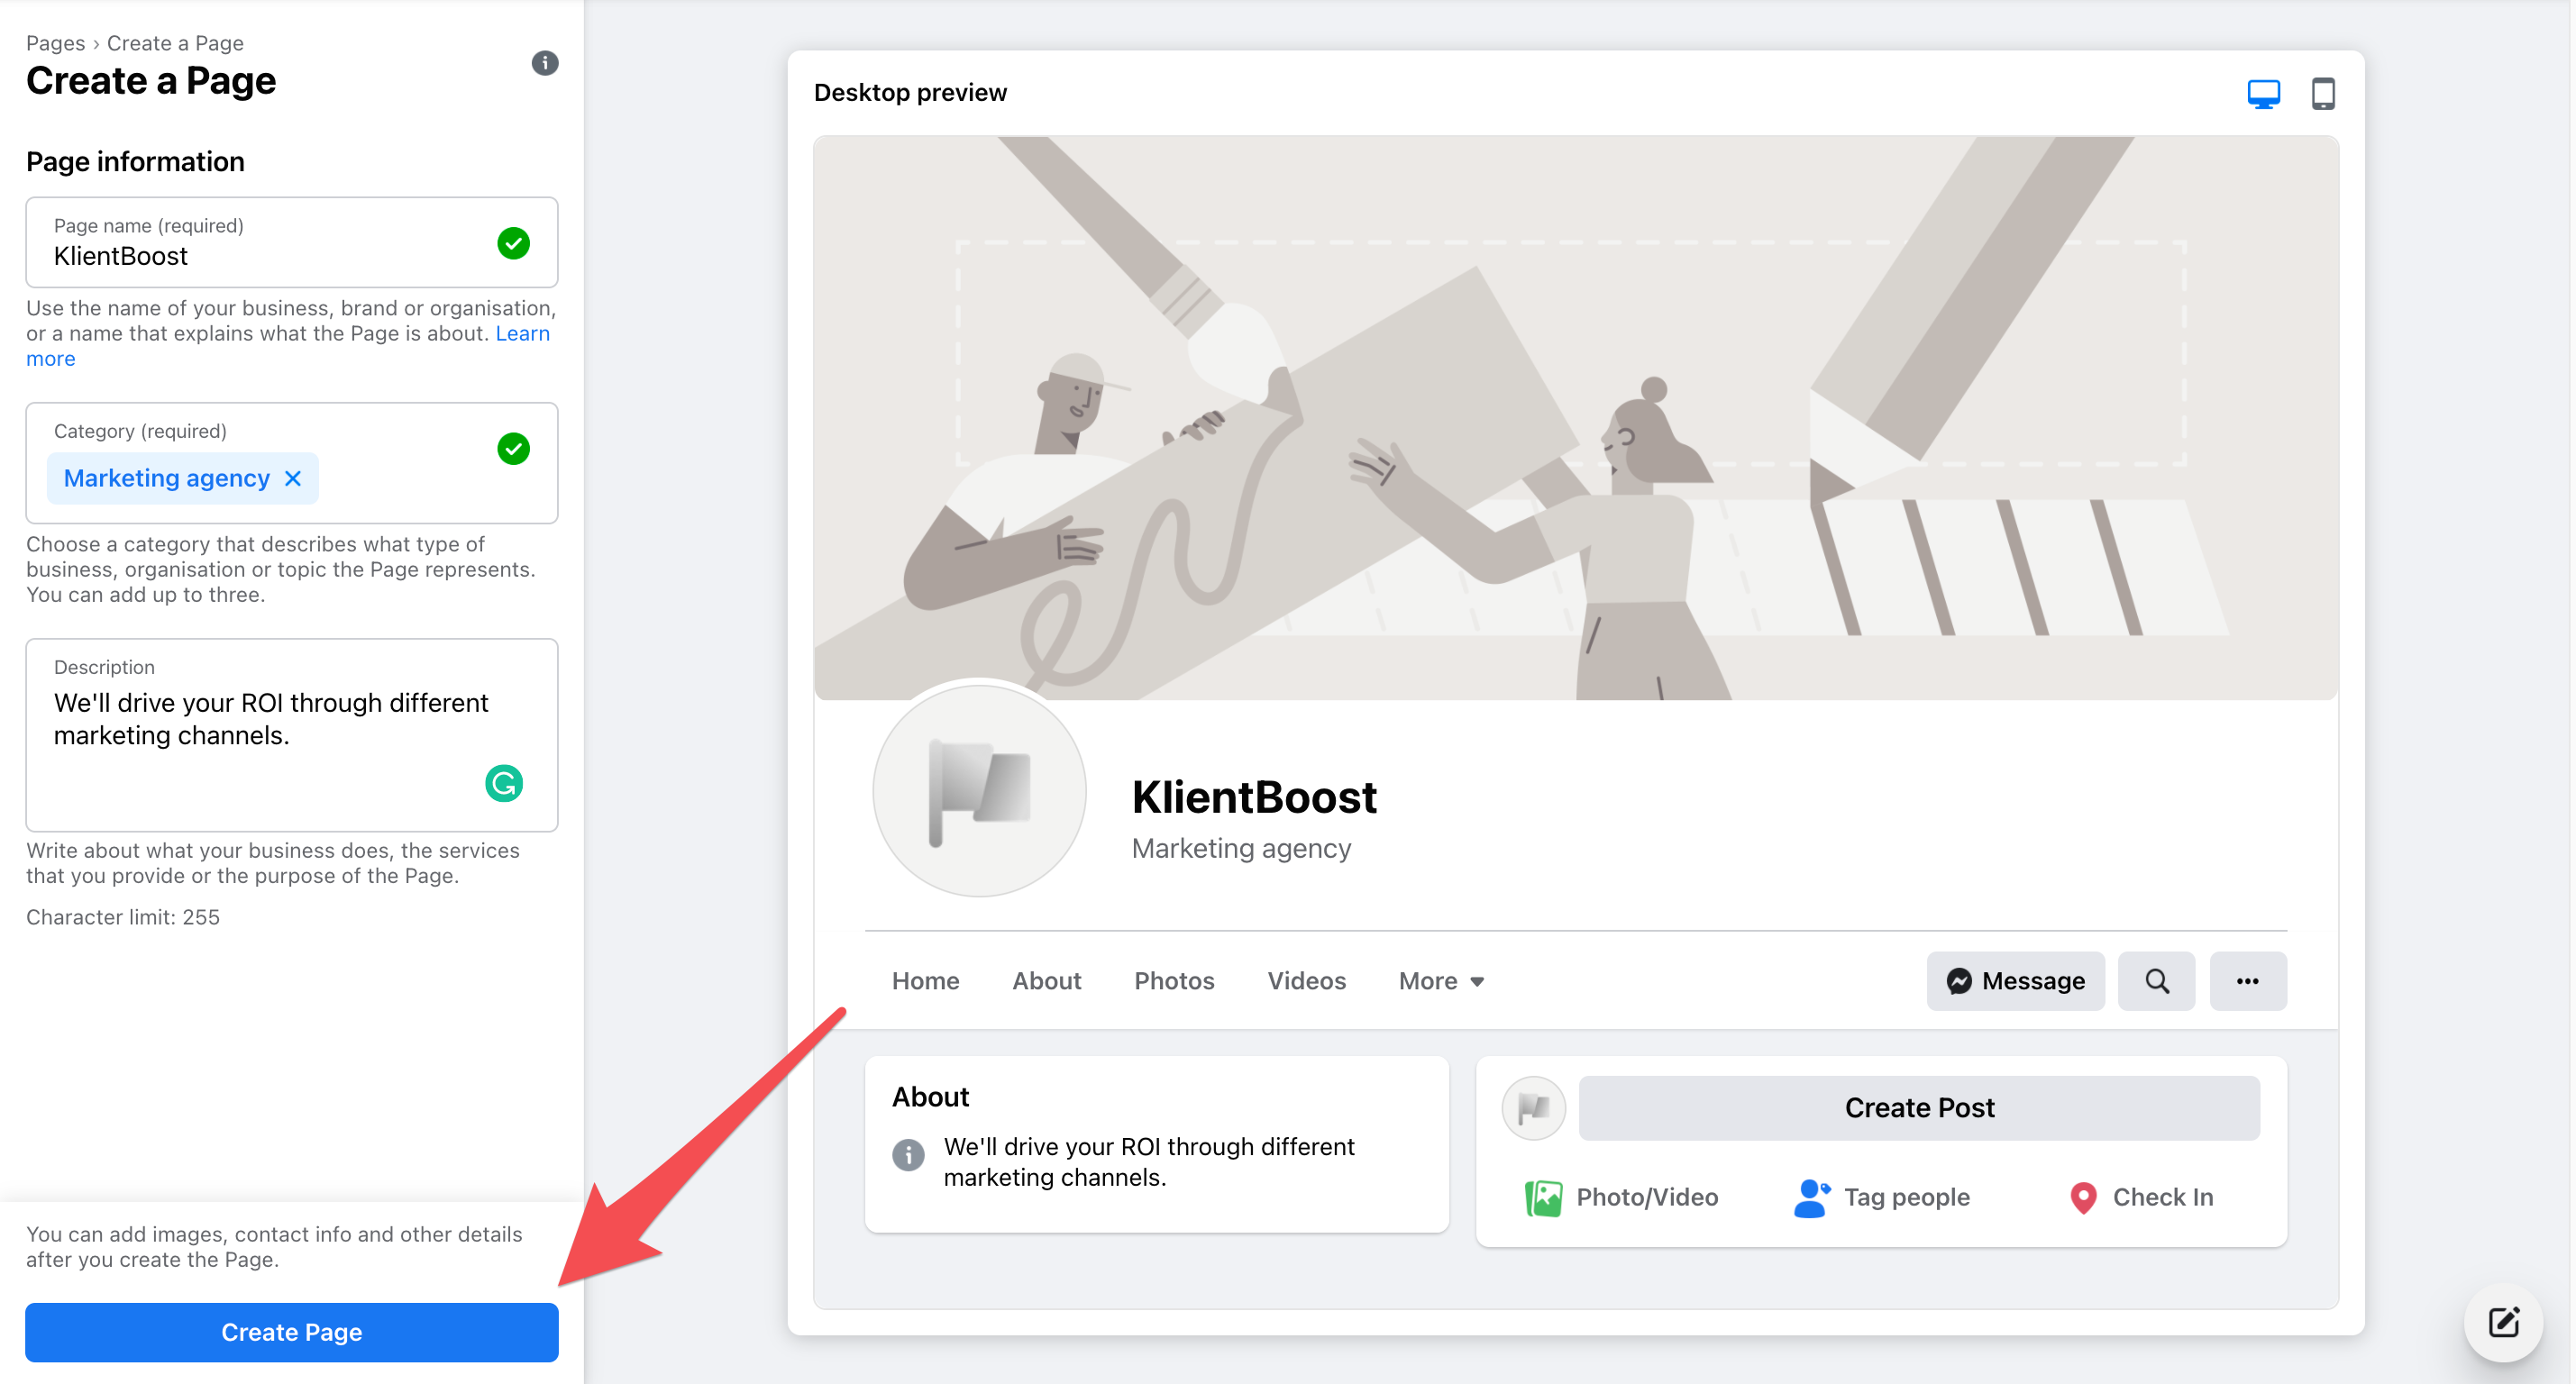 facebook marketing new page info inputed